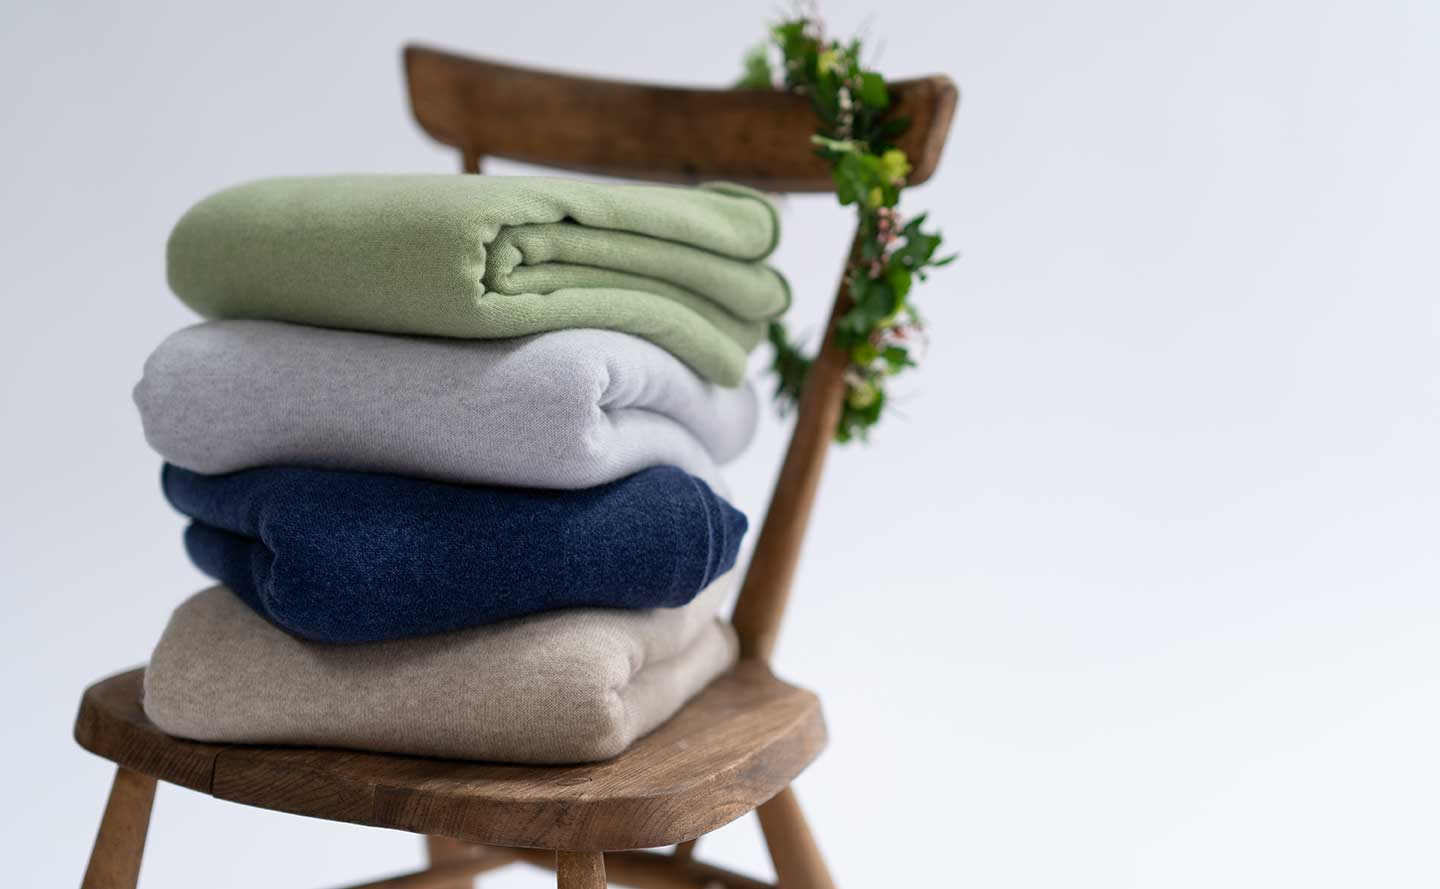 cashmere travel wraps piled up on wooden stool